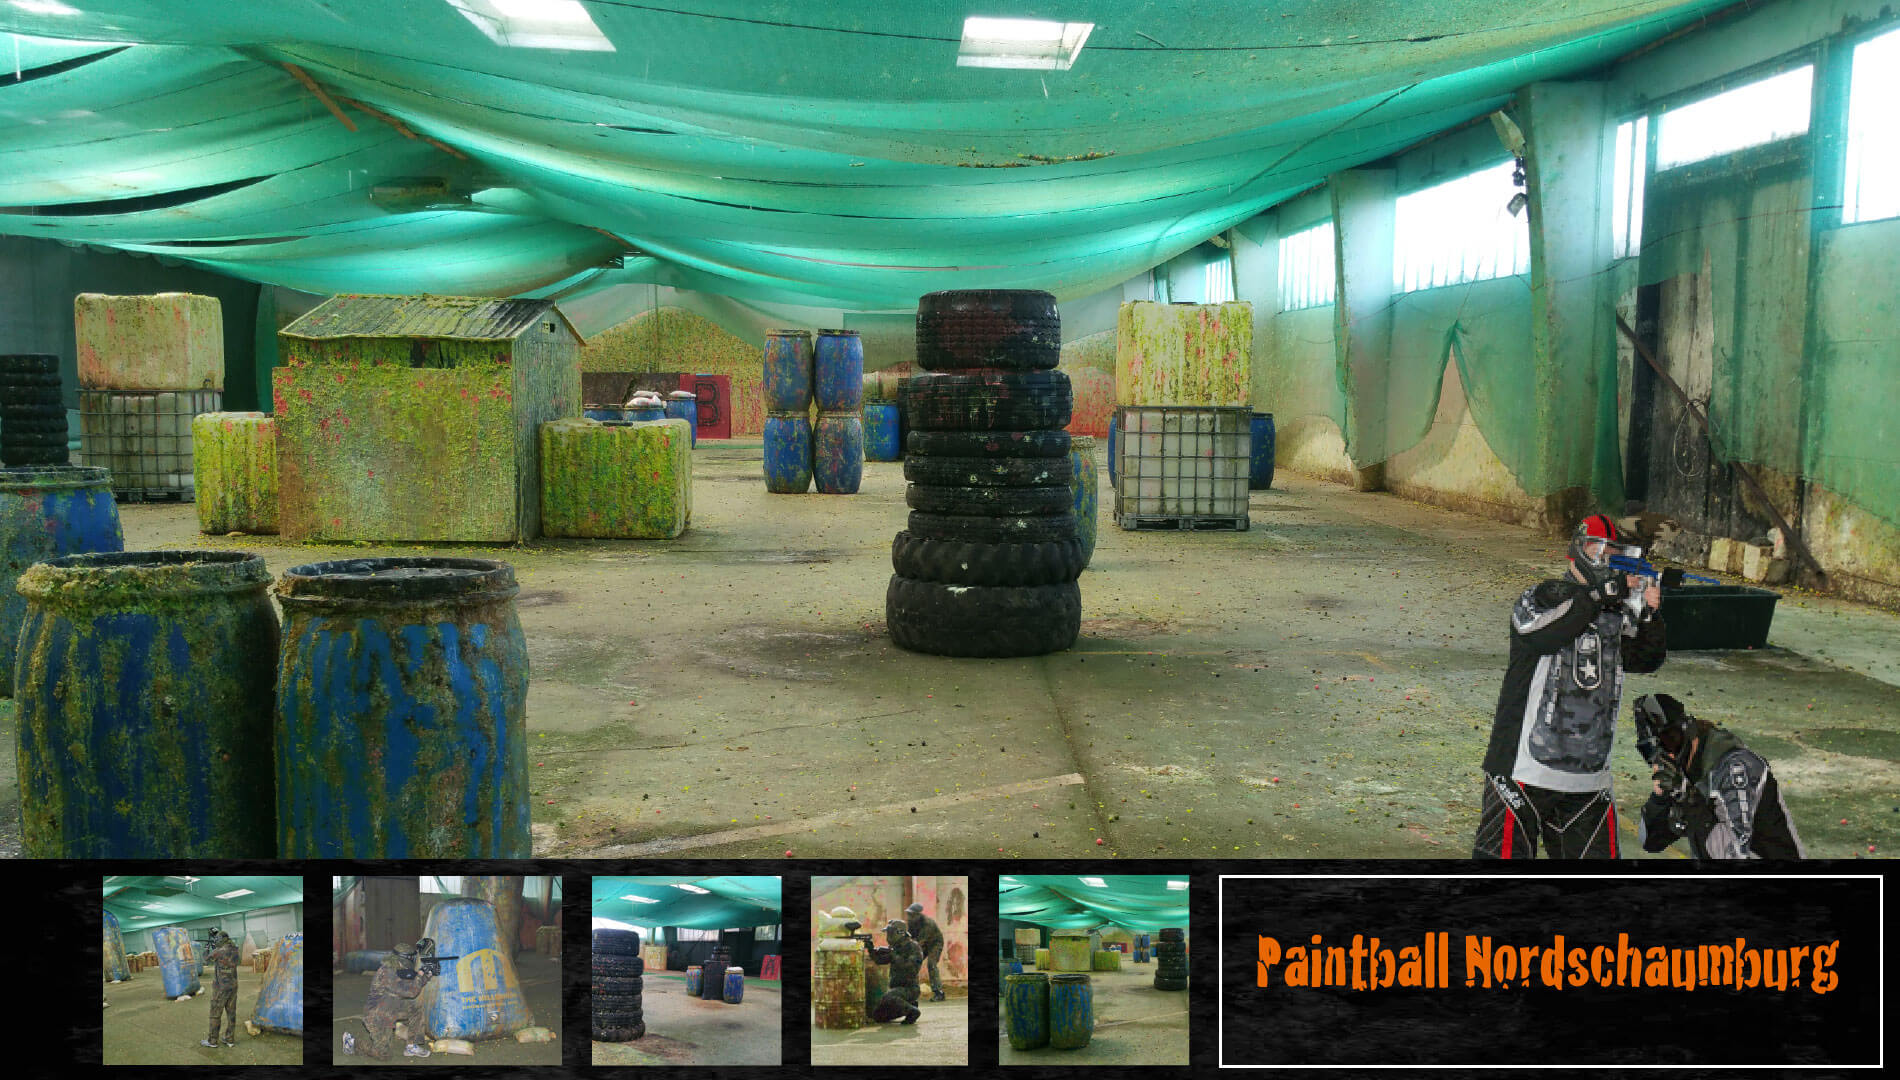 Paintball Nordschaumburg bei Hannover